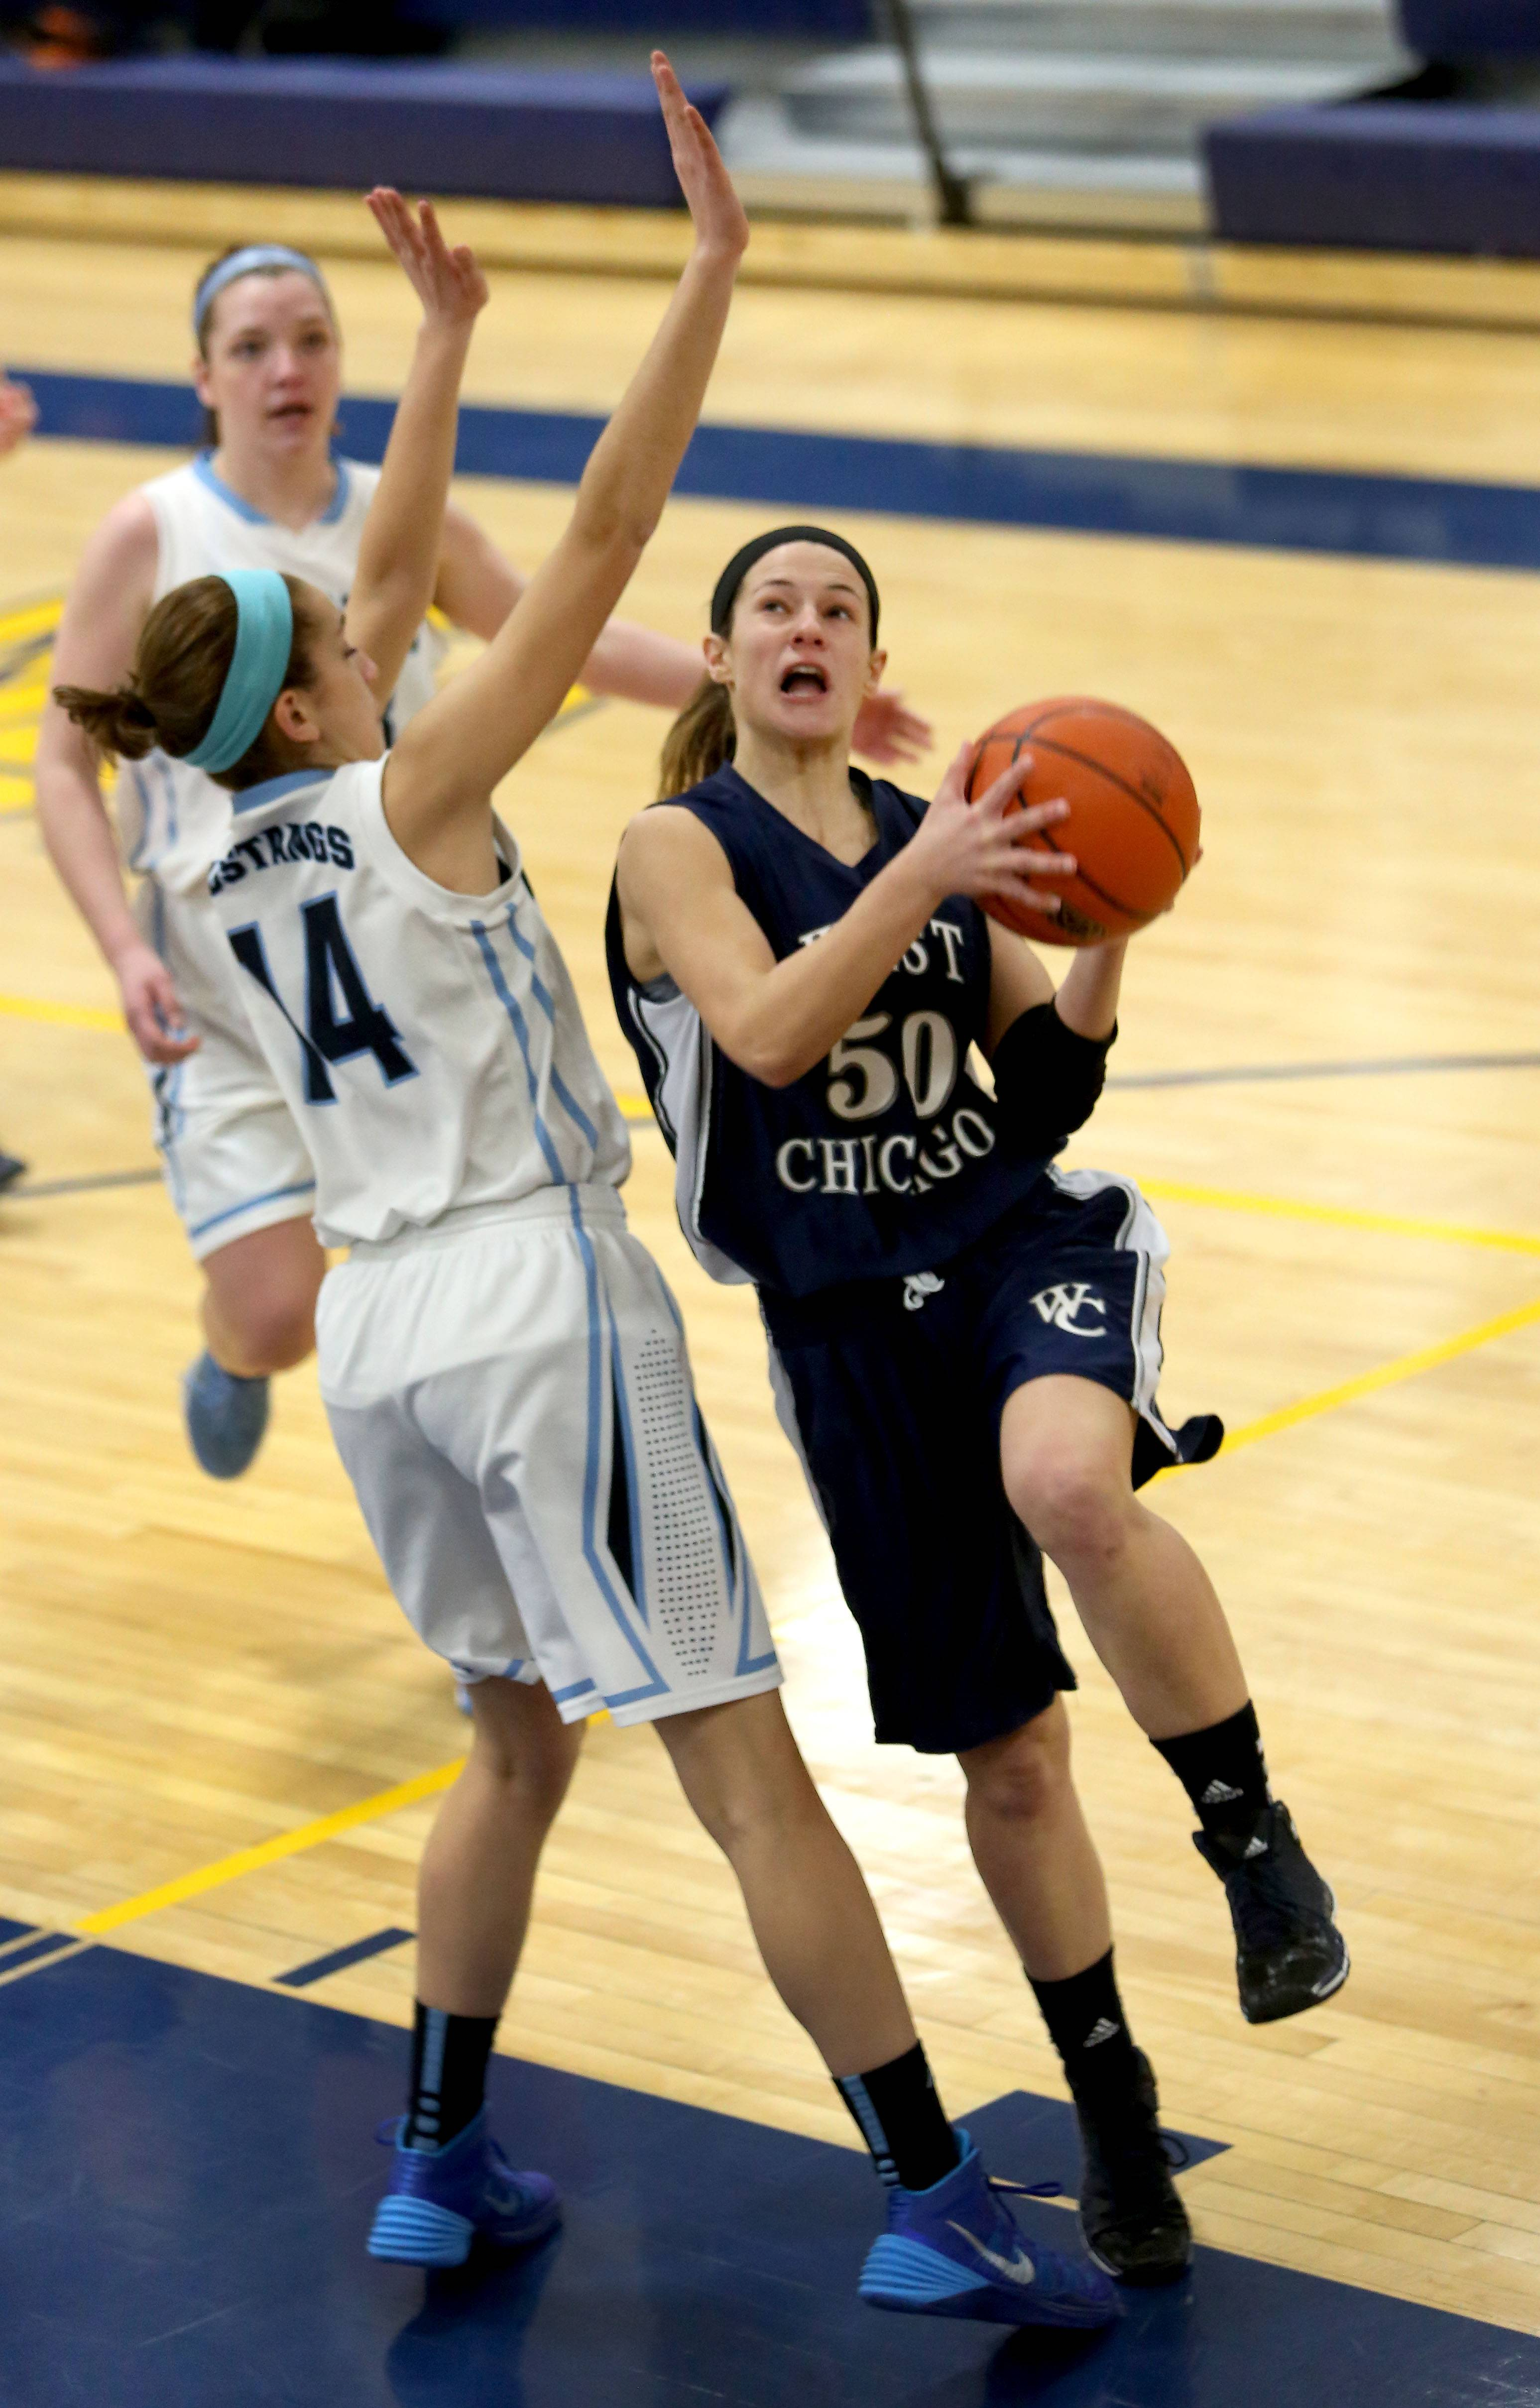 West Chicago's Natalie Warkins, right, looks to shoot around Claire Hardy of Downers Grove South.